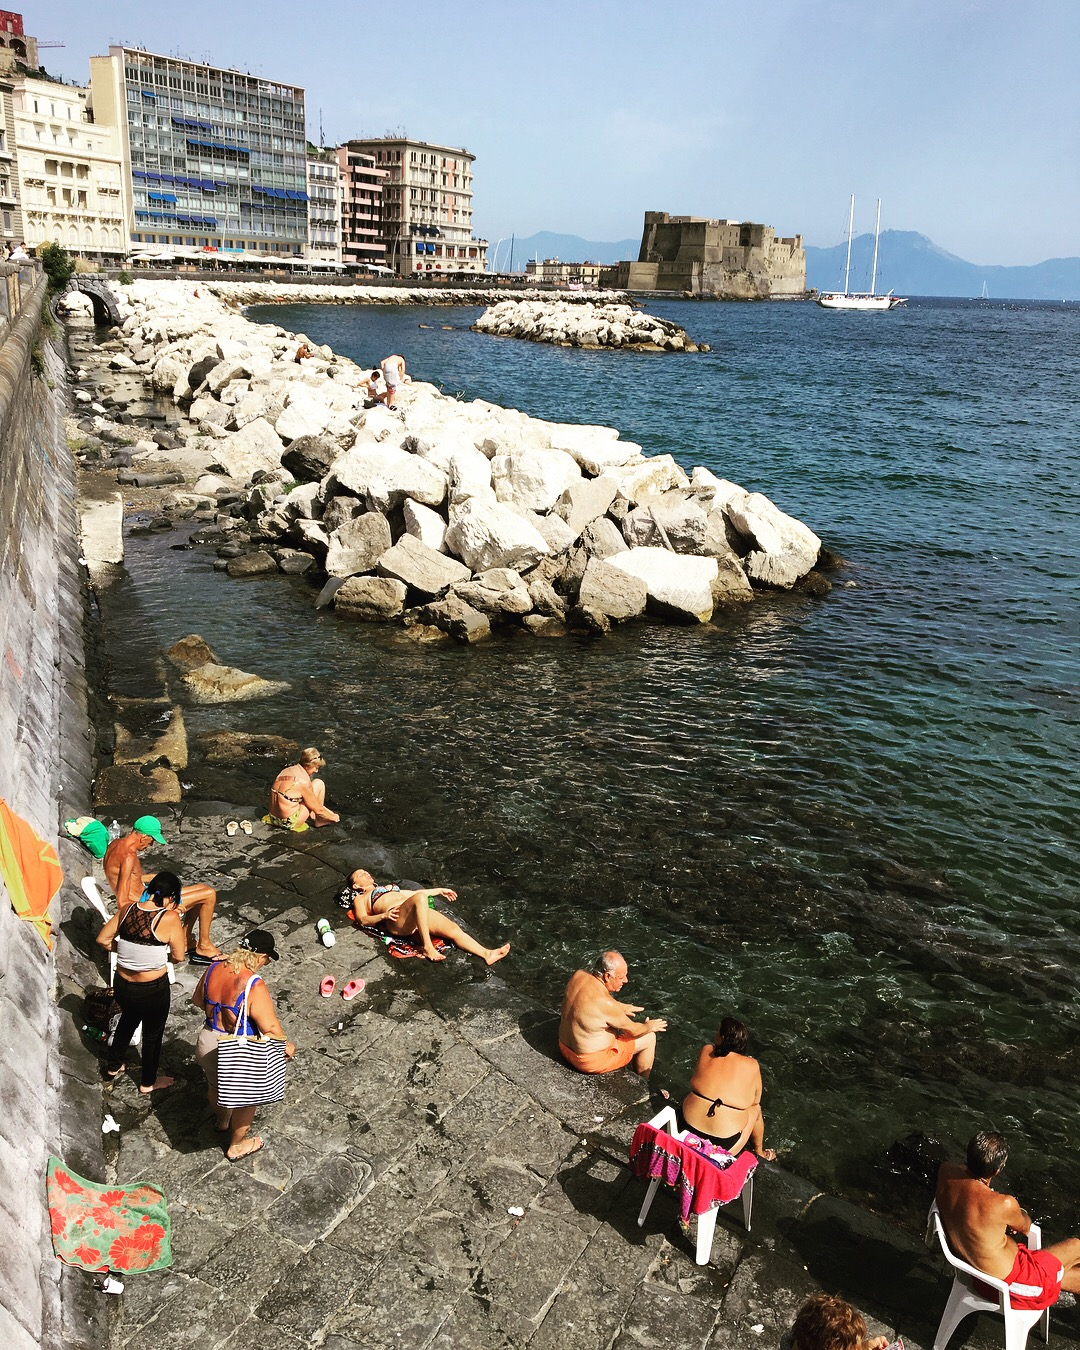 People swimming in Naples